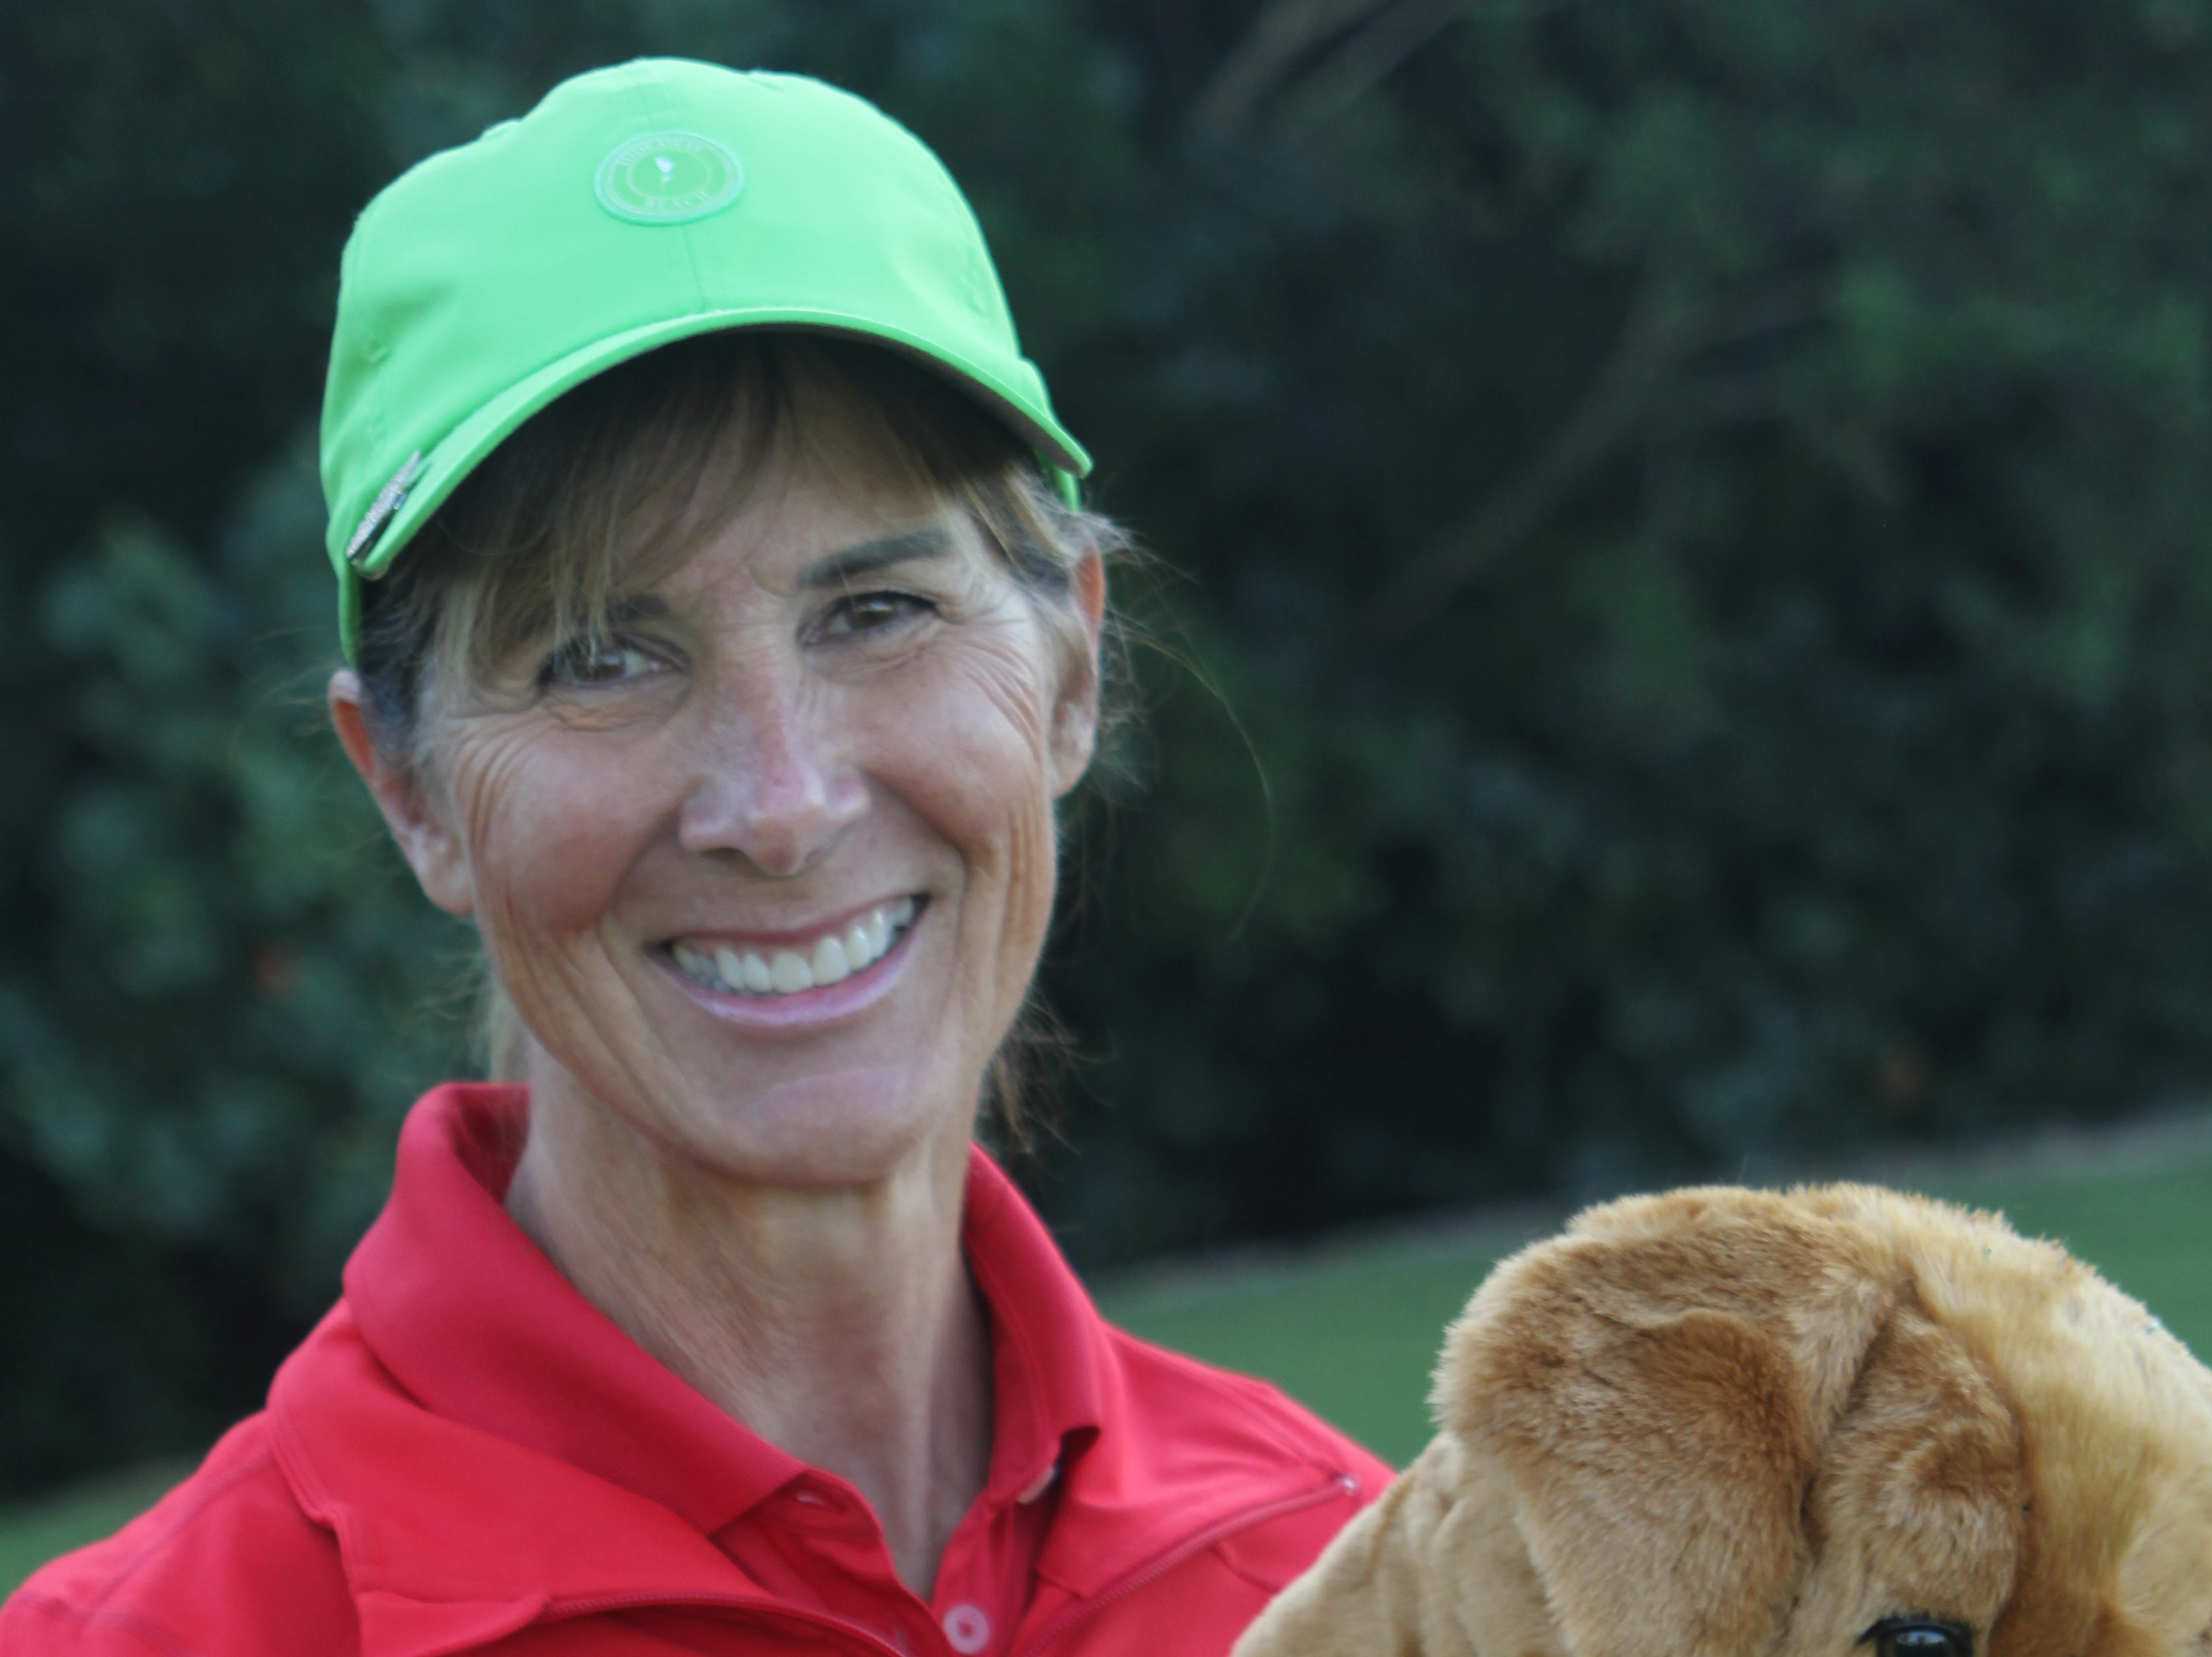 Gina Day's driver cover has a story. She trains golden retrievers to be service dogs for combat wounded veterans.